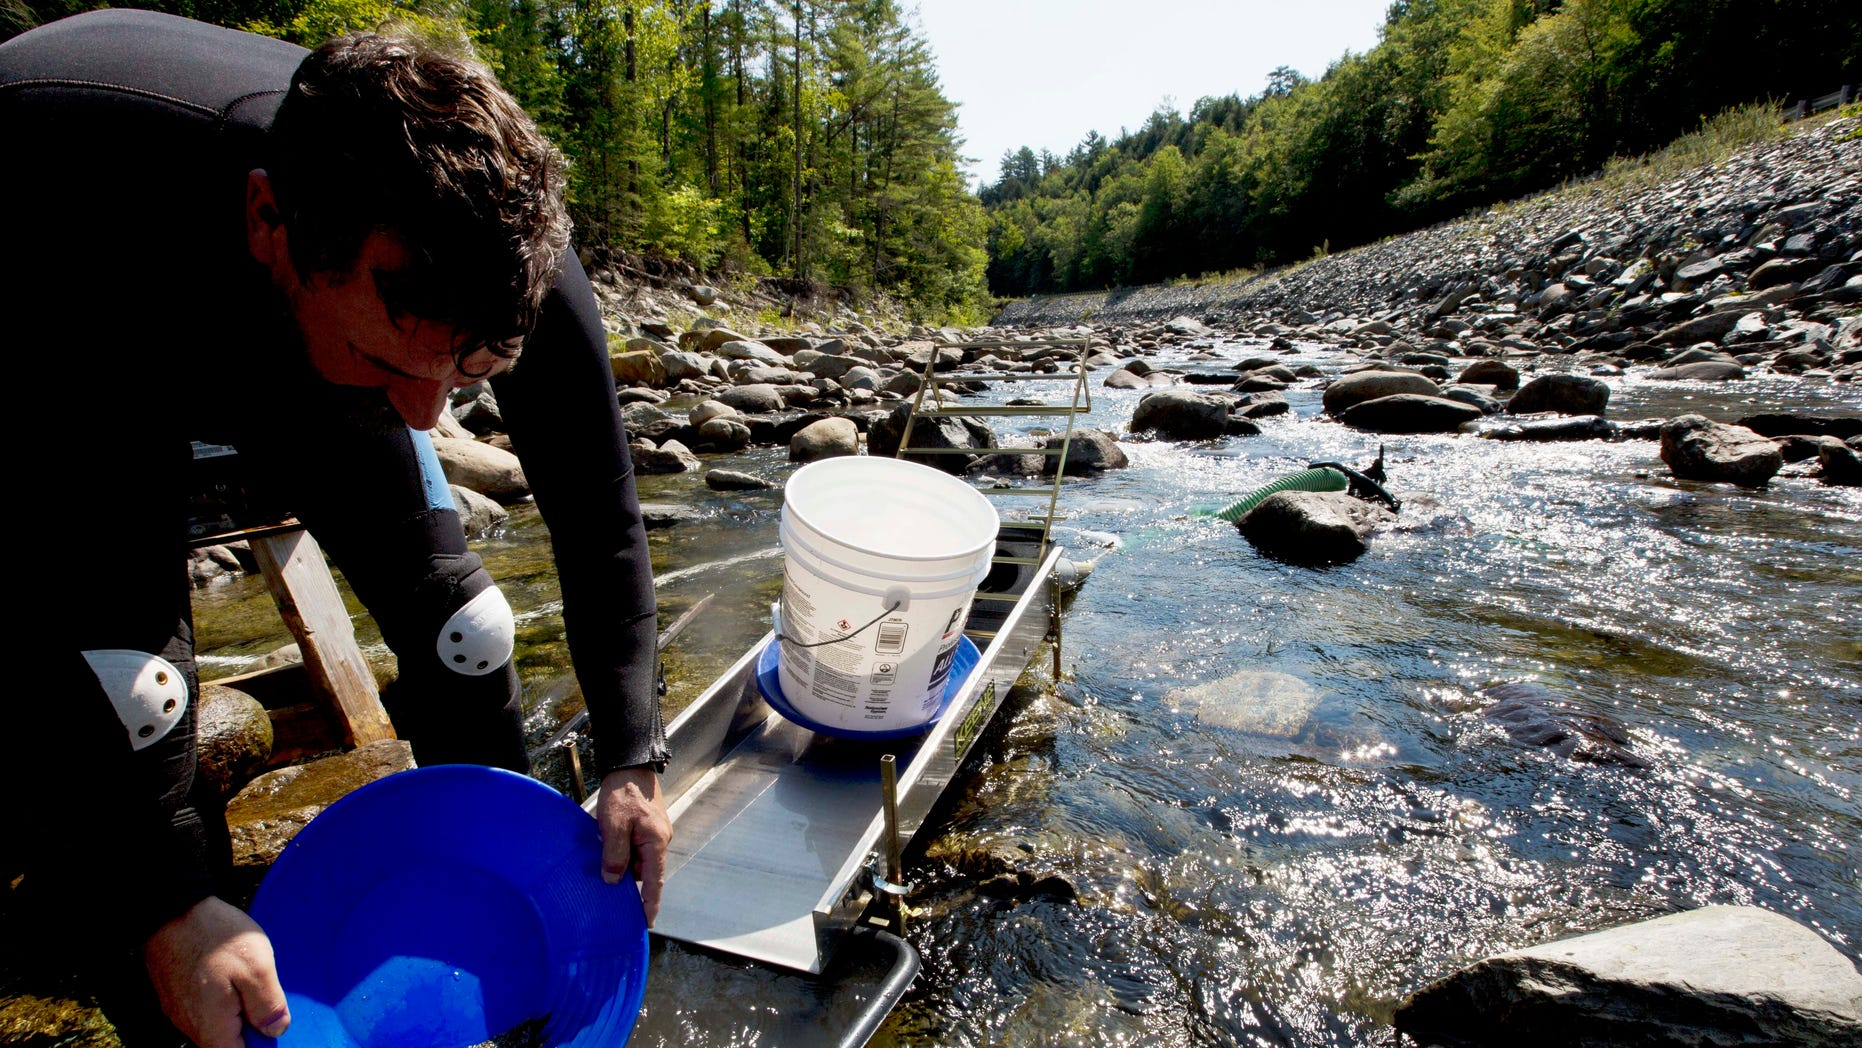 In this photo taken Sunday, Sept. 4, 2016, Chris Hall uses a sluice box to pan for gold in the Wild Ammonoosuc River in Bath, N.H.